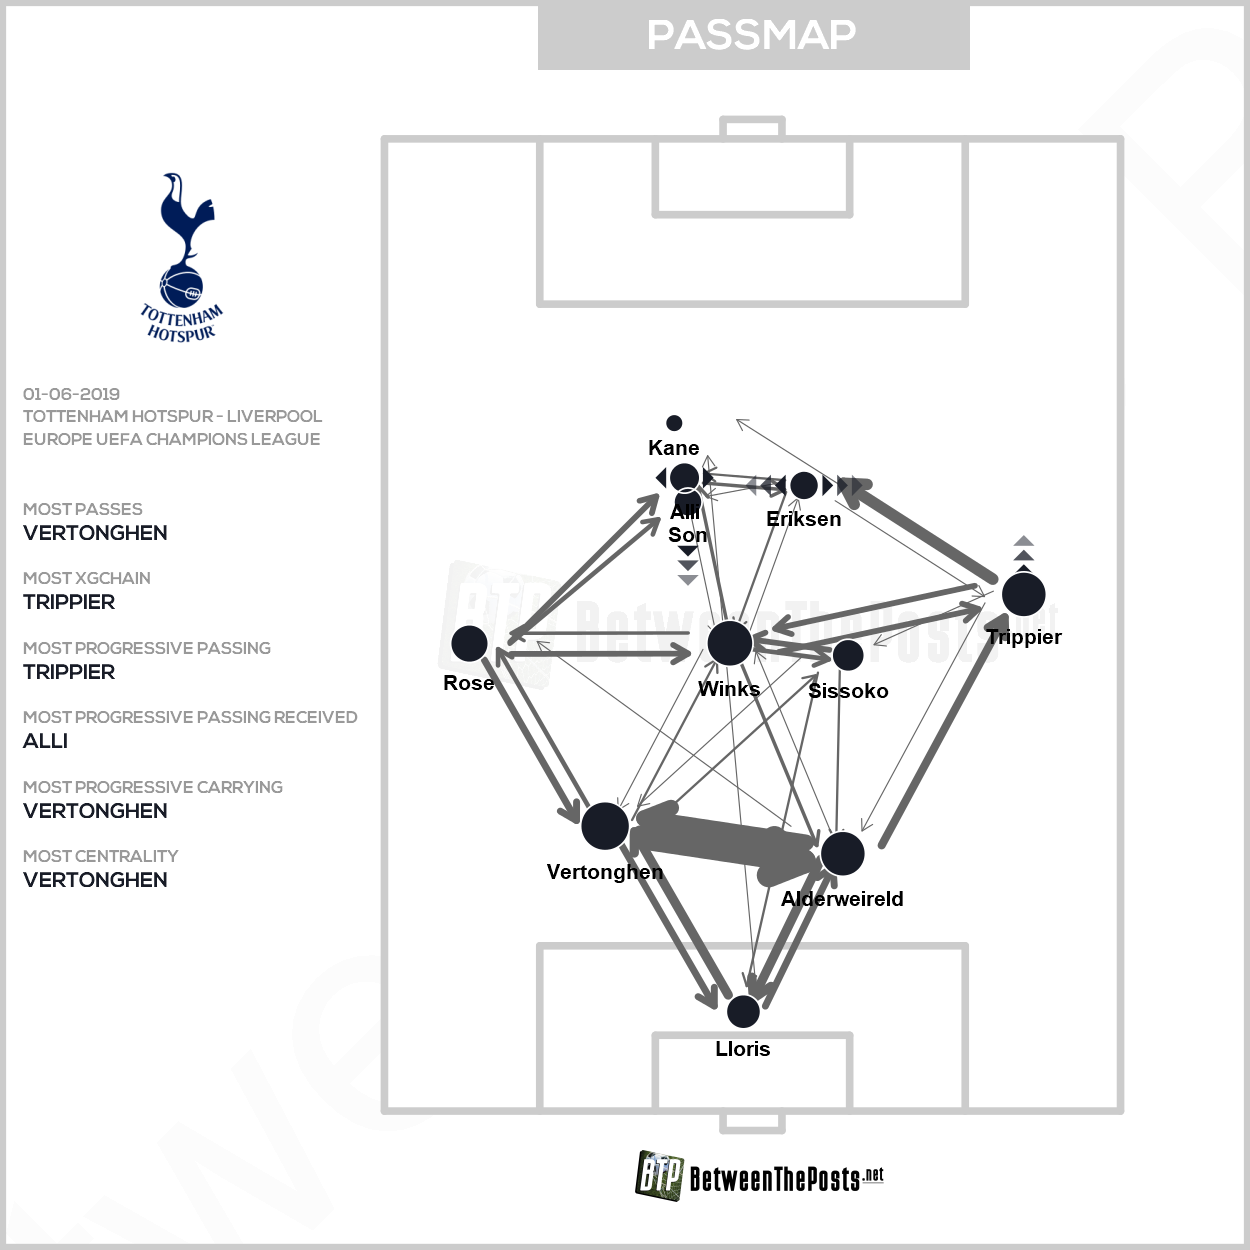 Passmap Tottenham Hotspur Liverpool 0-2 Champions League Final